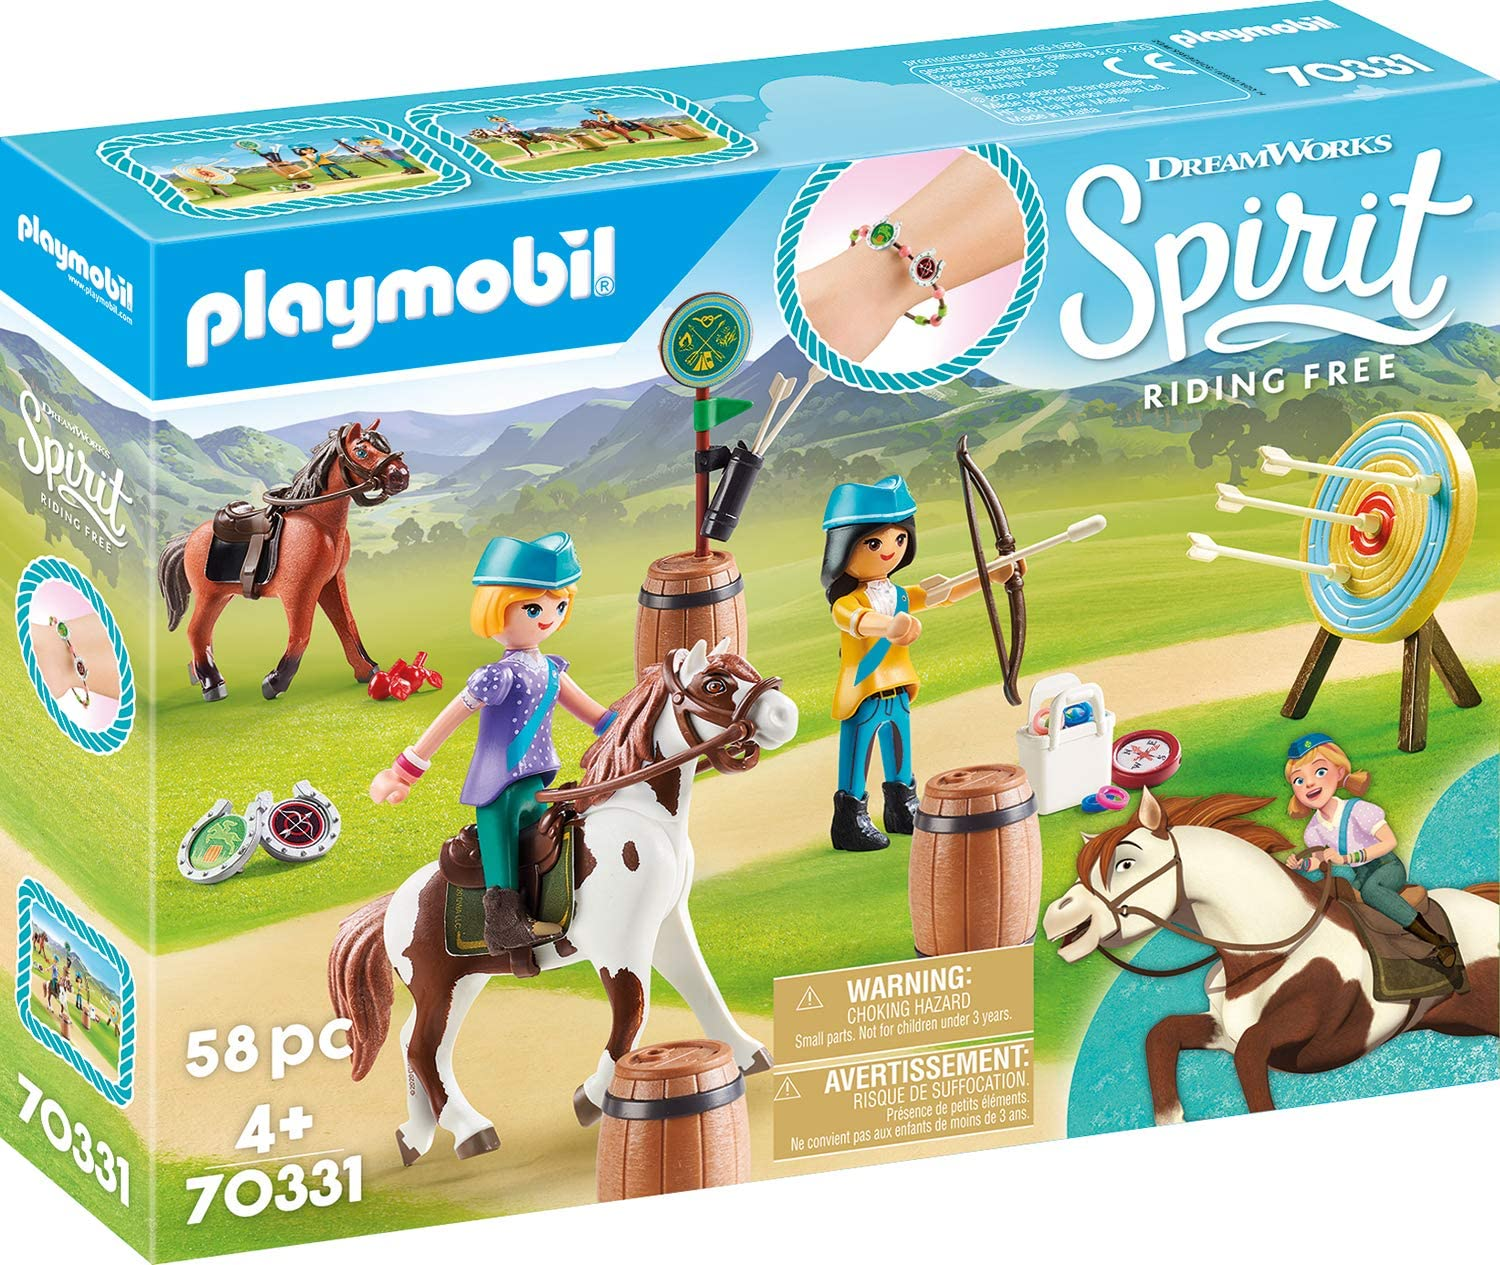 Playmobil DreamWorks amazon